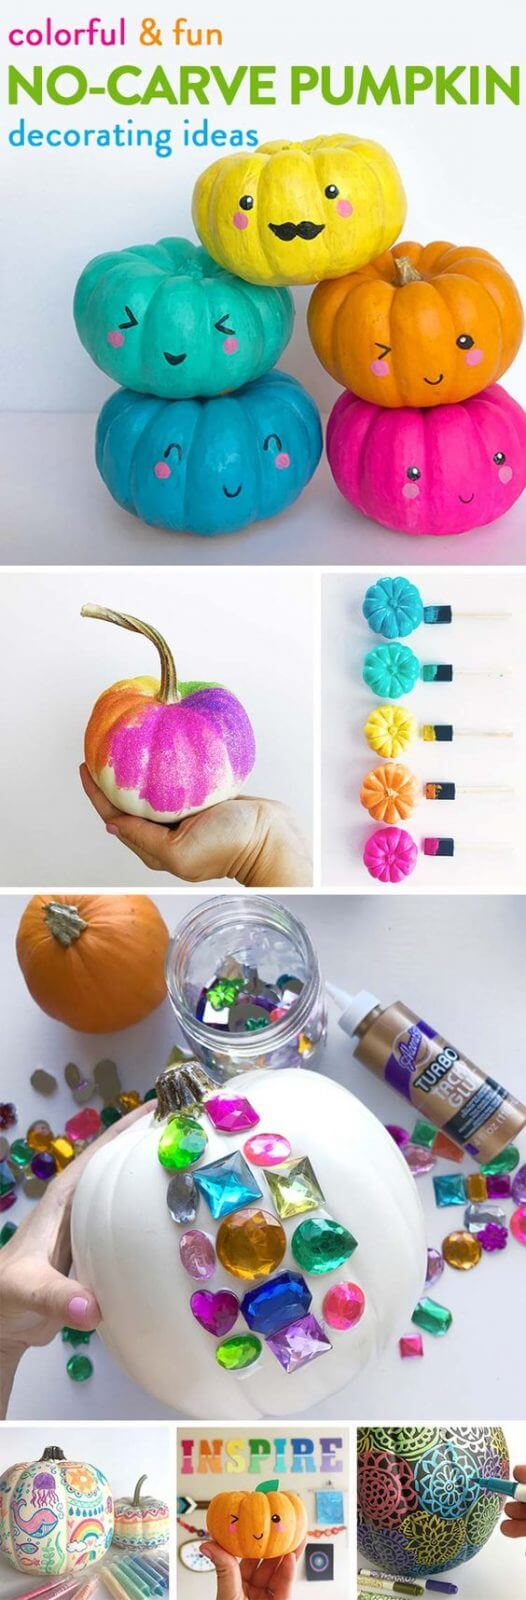 Colorful No-carve Pumpkin | No-Carve Pumpkin Decorating Ideas For This Halloween